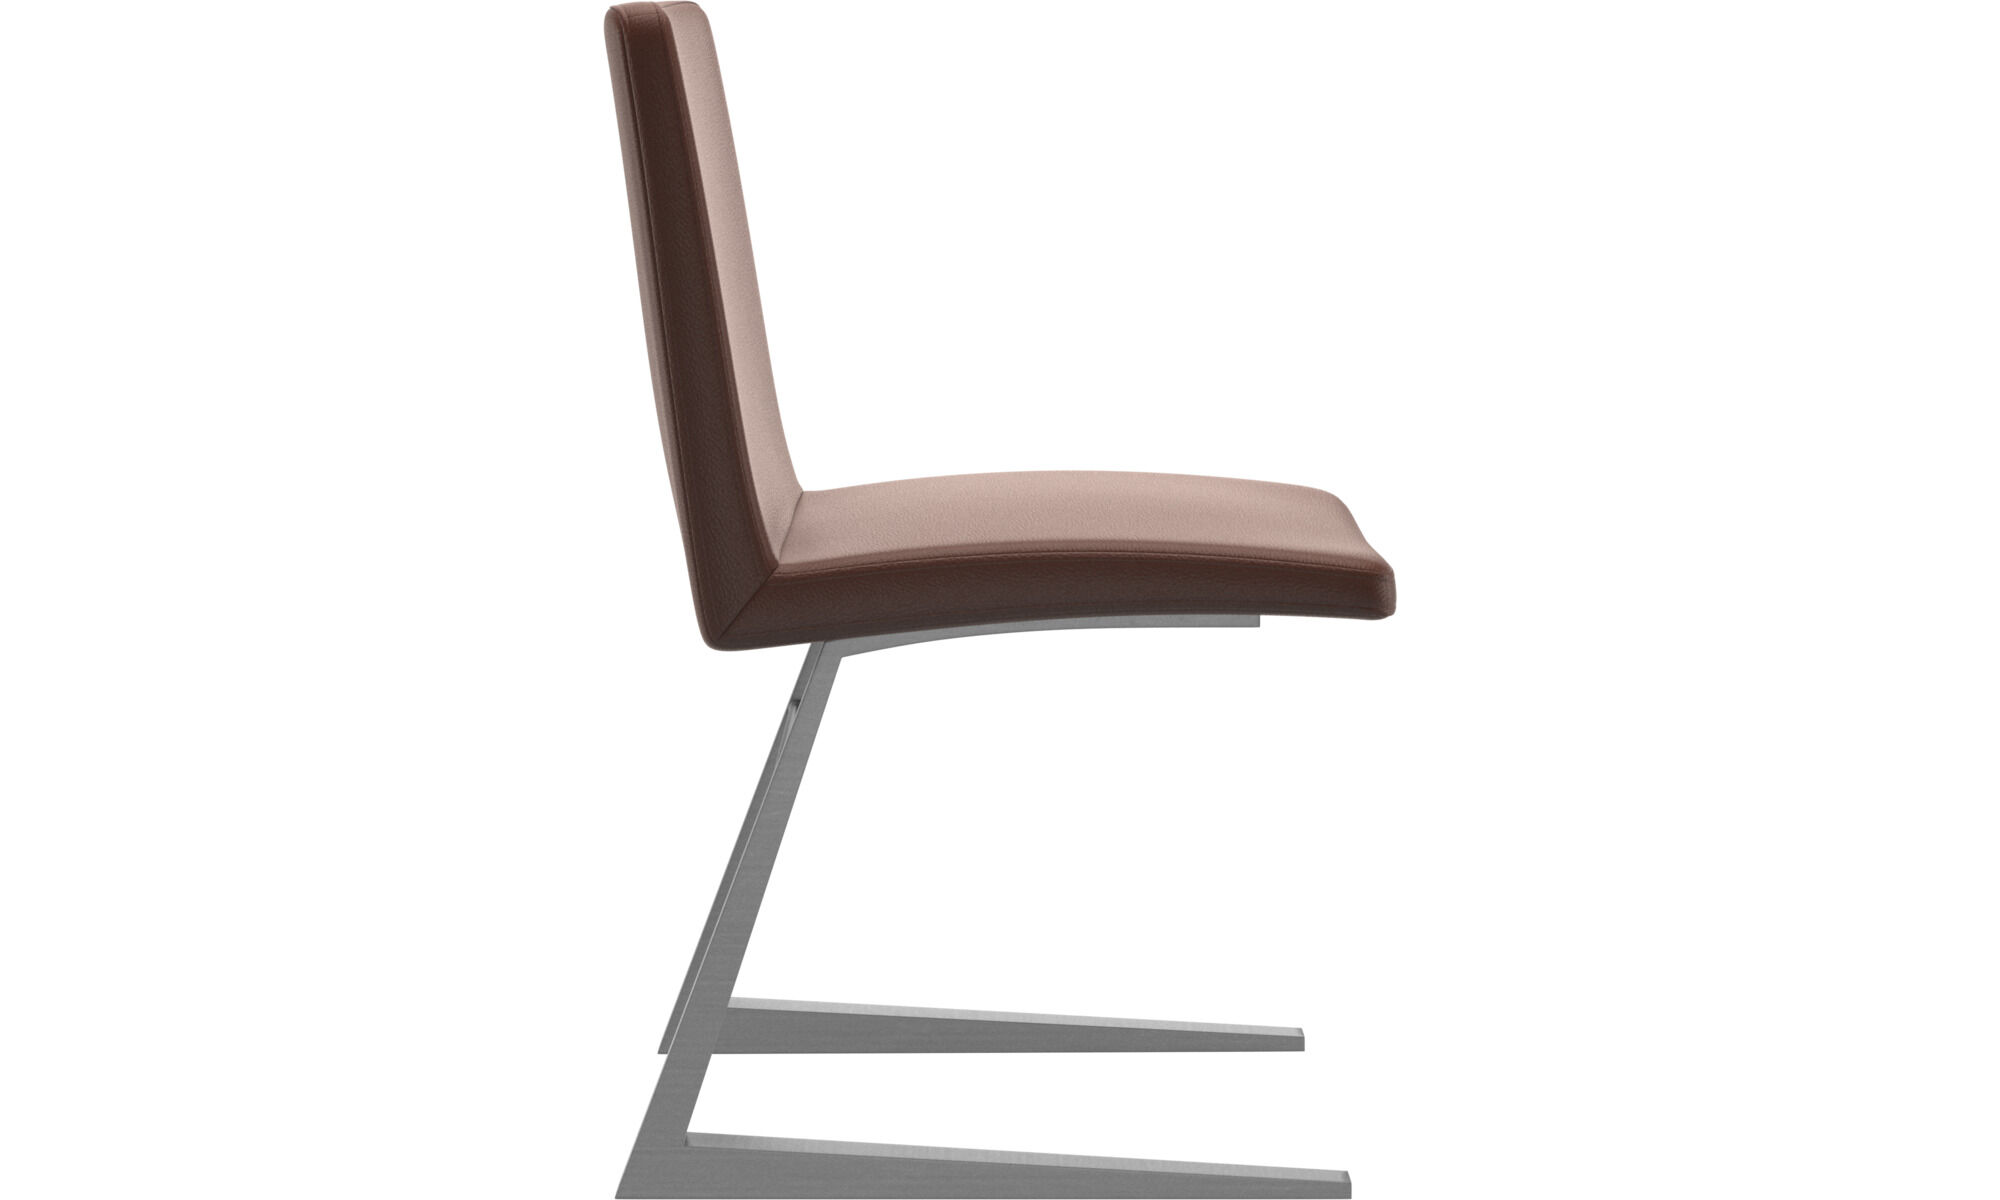 Mariposa Deluxe chair- 6 available, price per chair